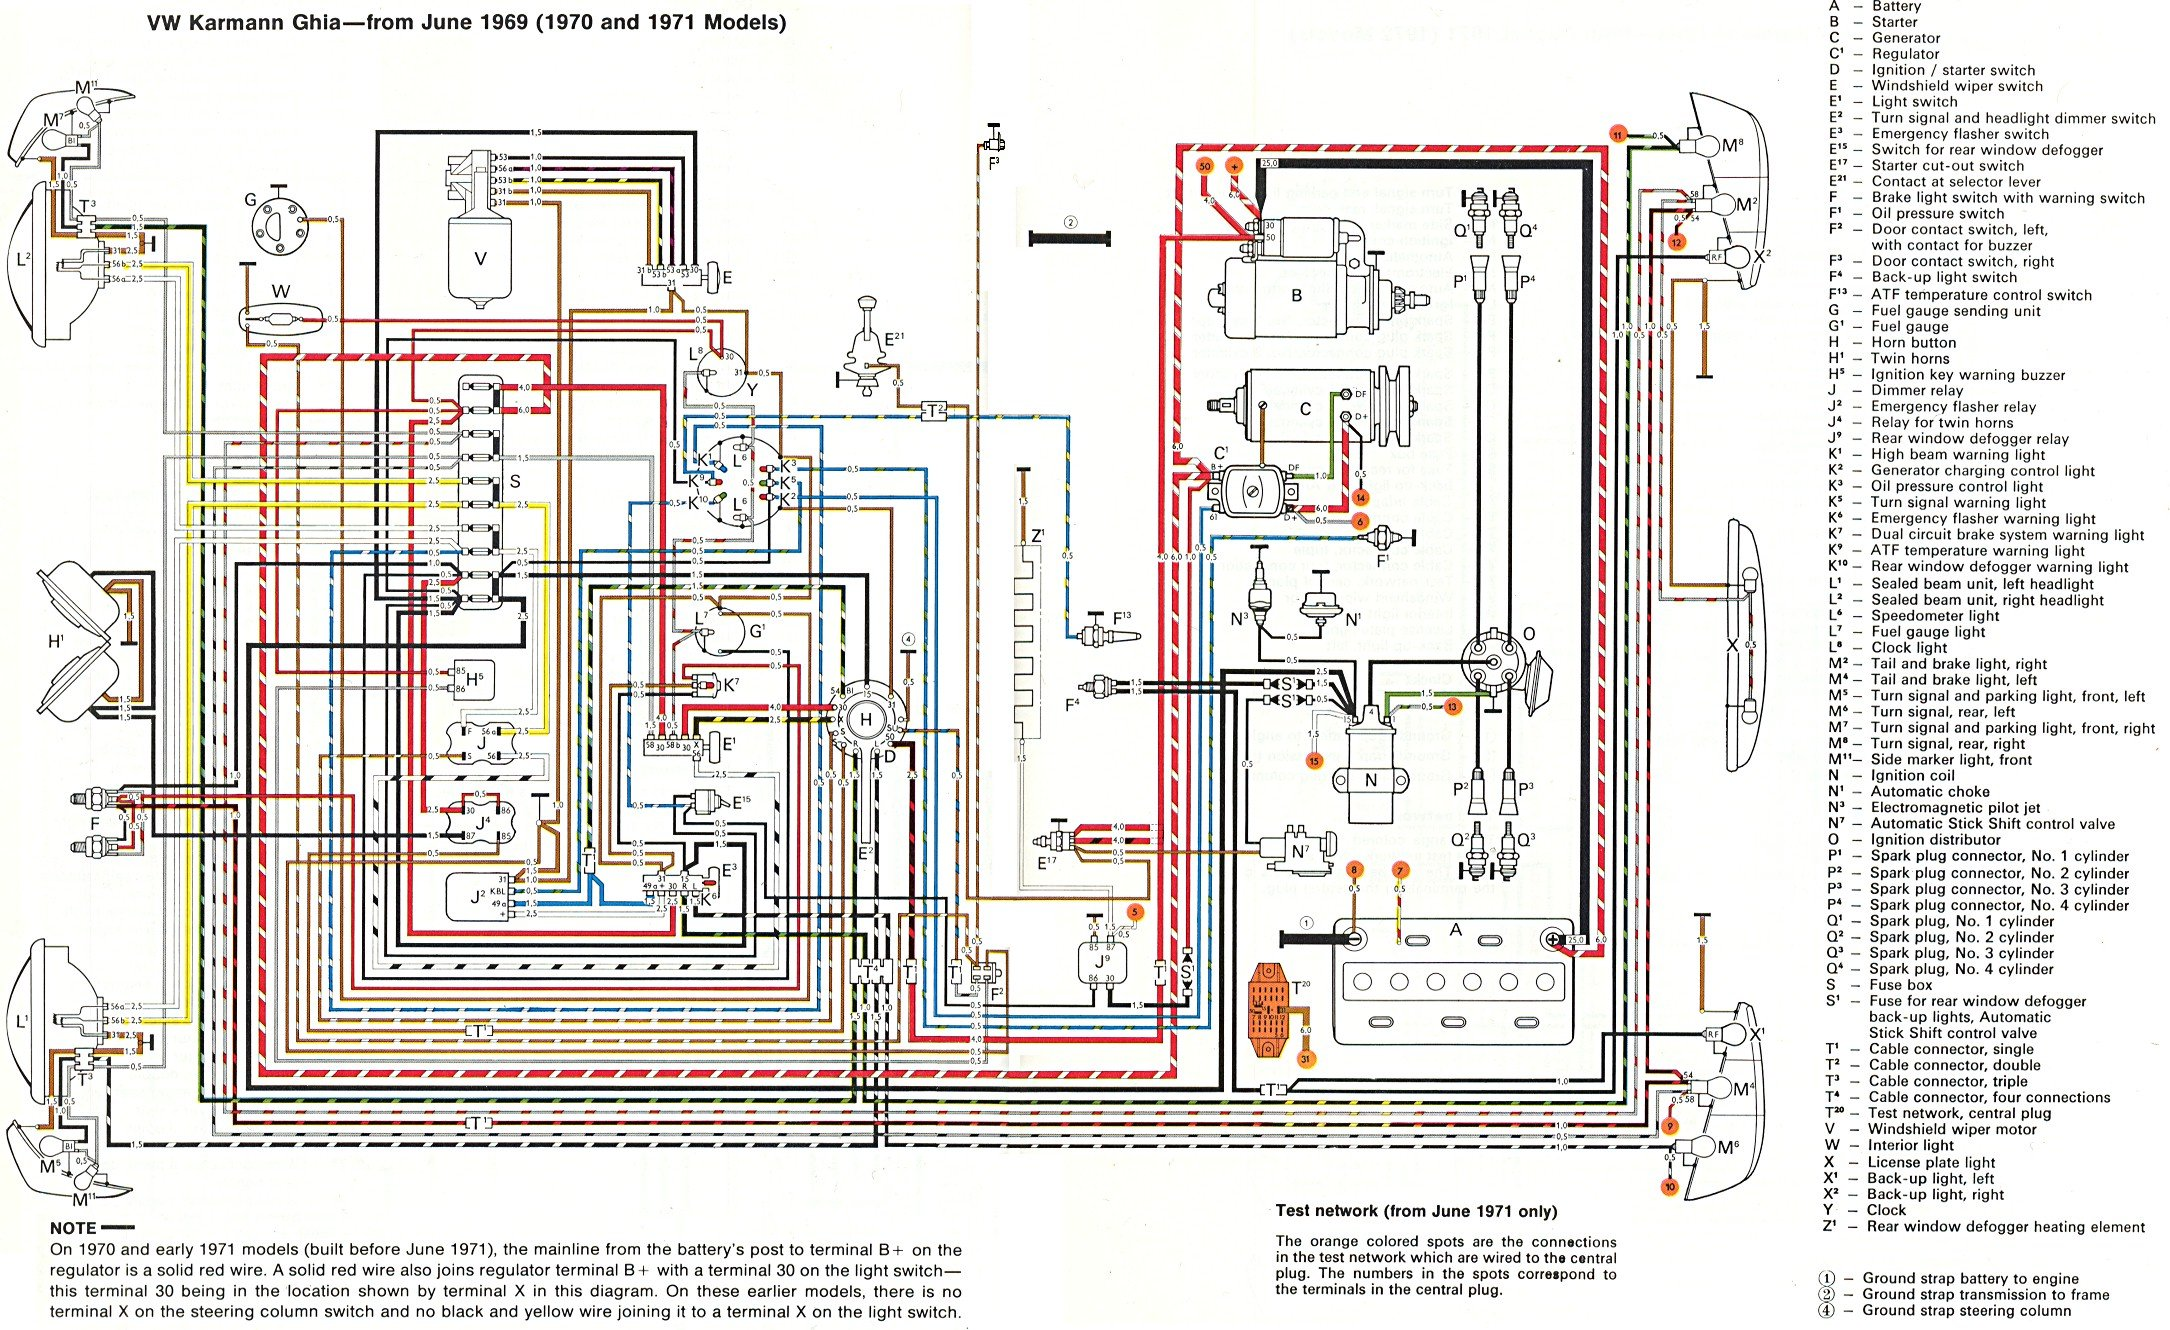 69 Camaro Turn Signal Wiring Diagram Wiring Diagram Workstation Workstation Pasticceriagele It